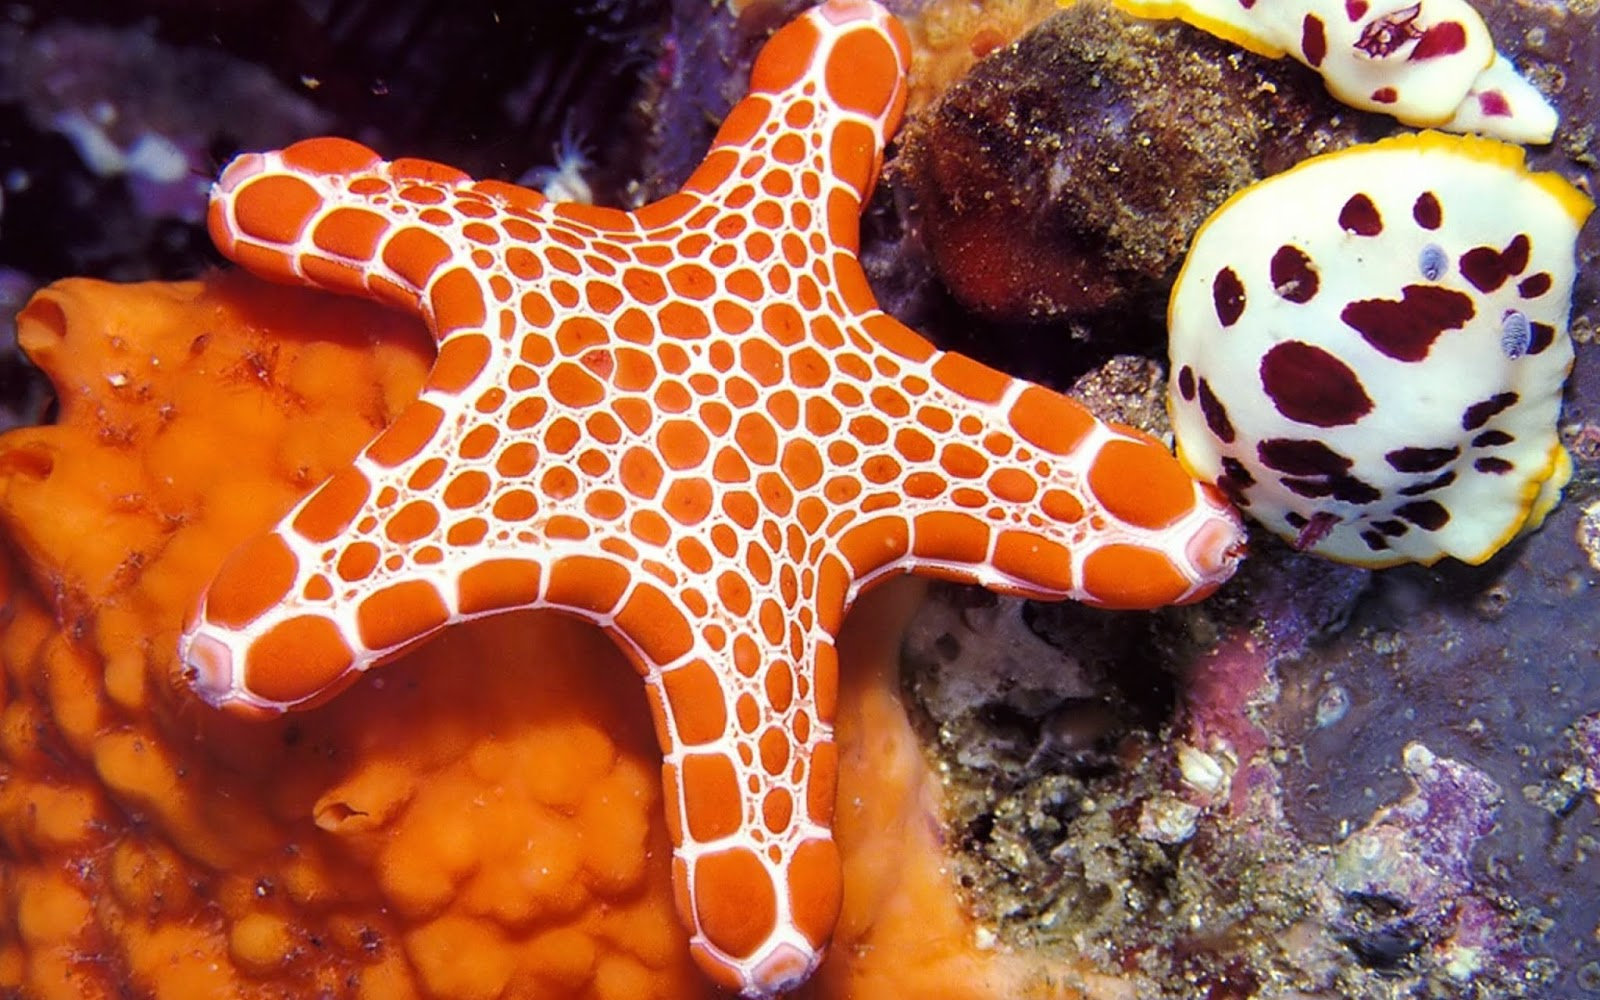 Starfish wallpapers HD - Beautiful wallpapers collection 2014